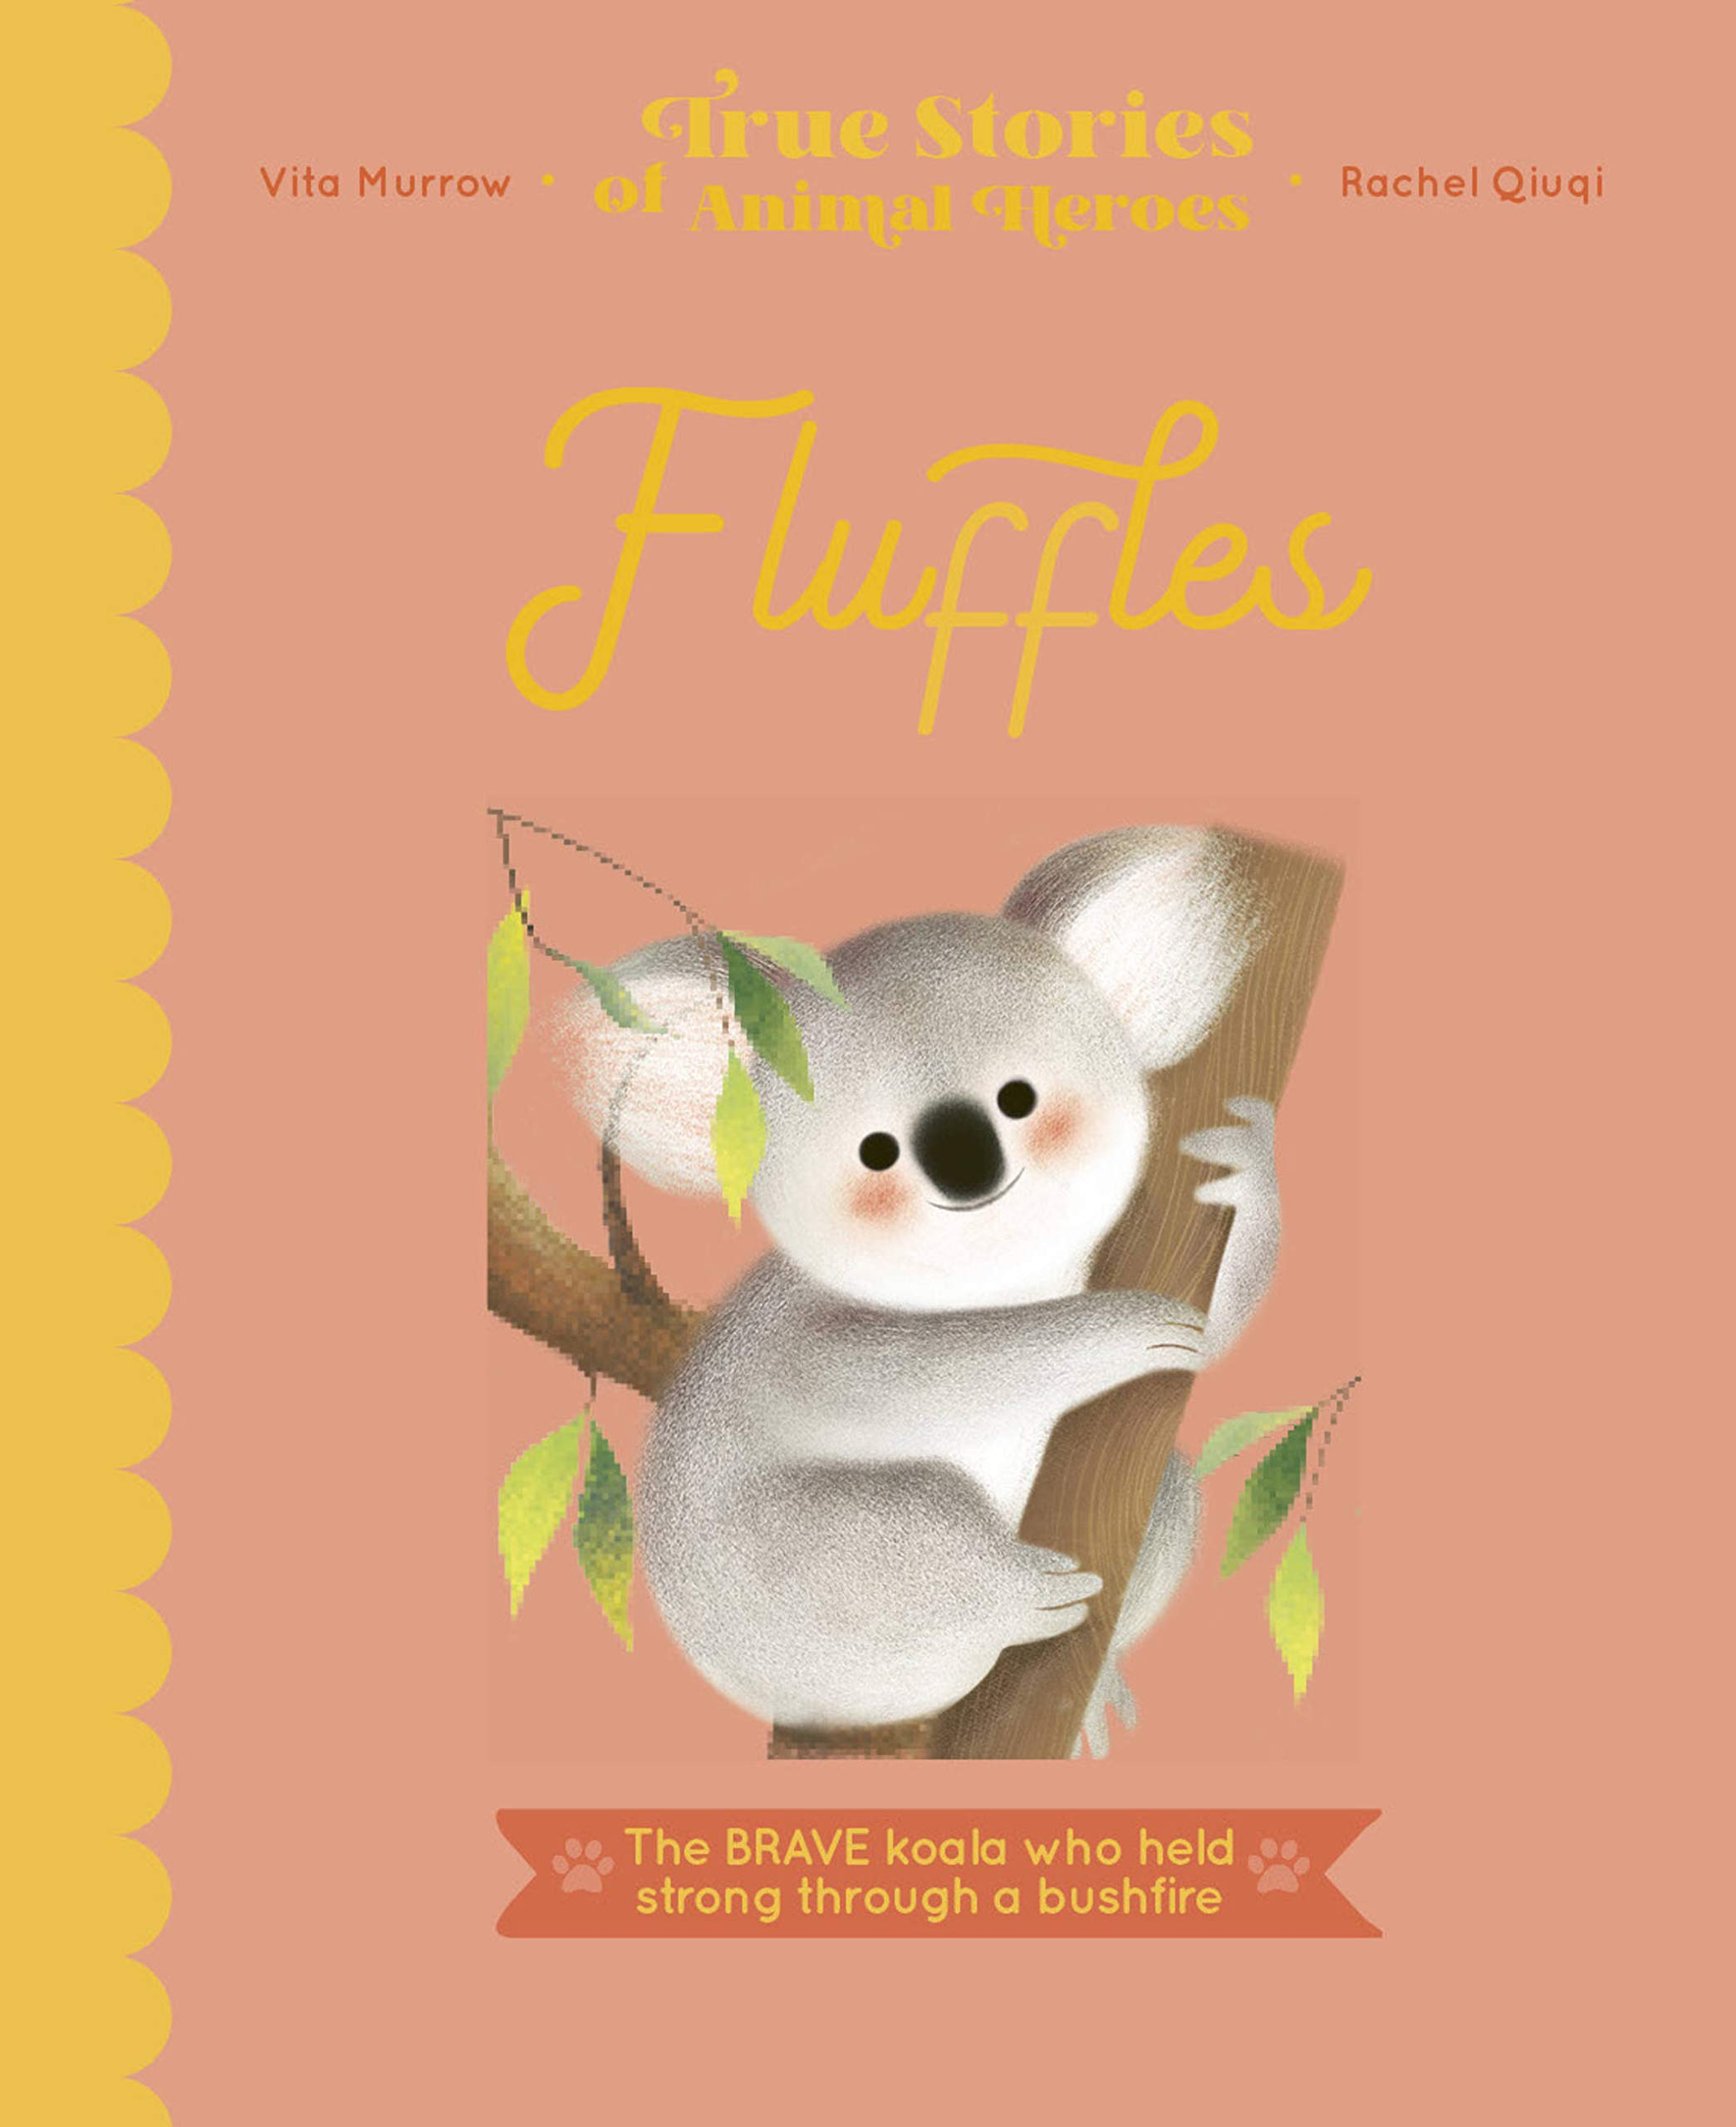 celebrate-picture-books-picture-book-review-true-tales-of-animal-heroes-fluffles